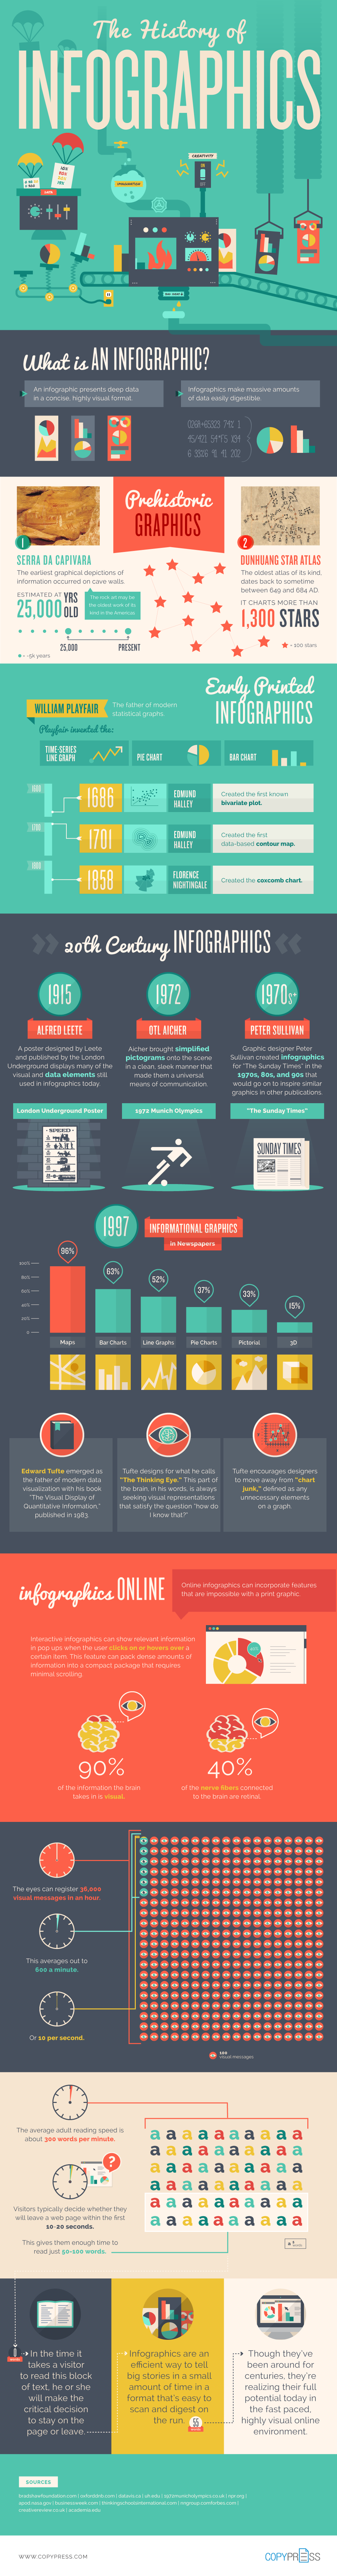 copypress-history-of-infographics.png